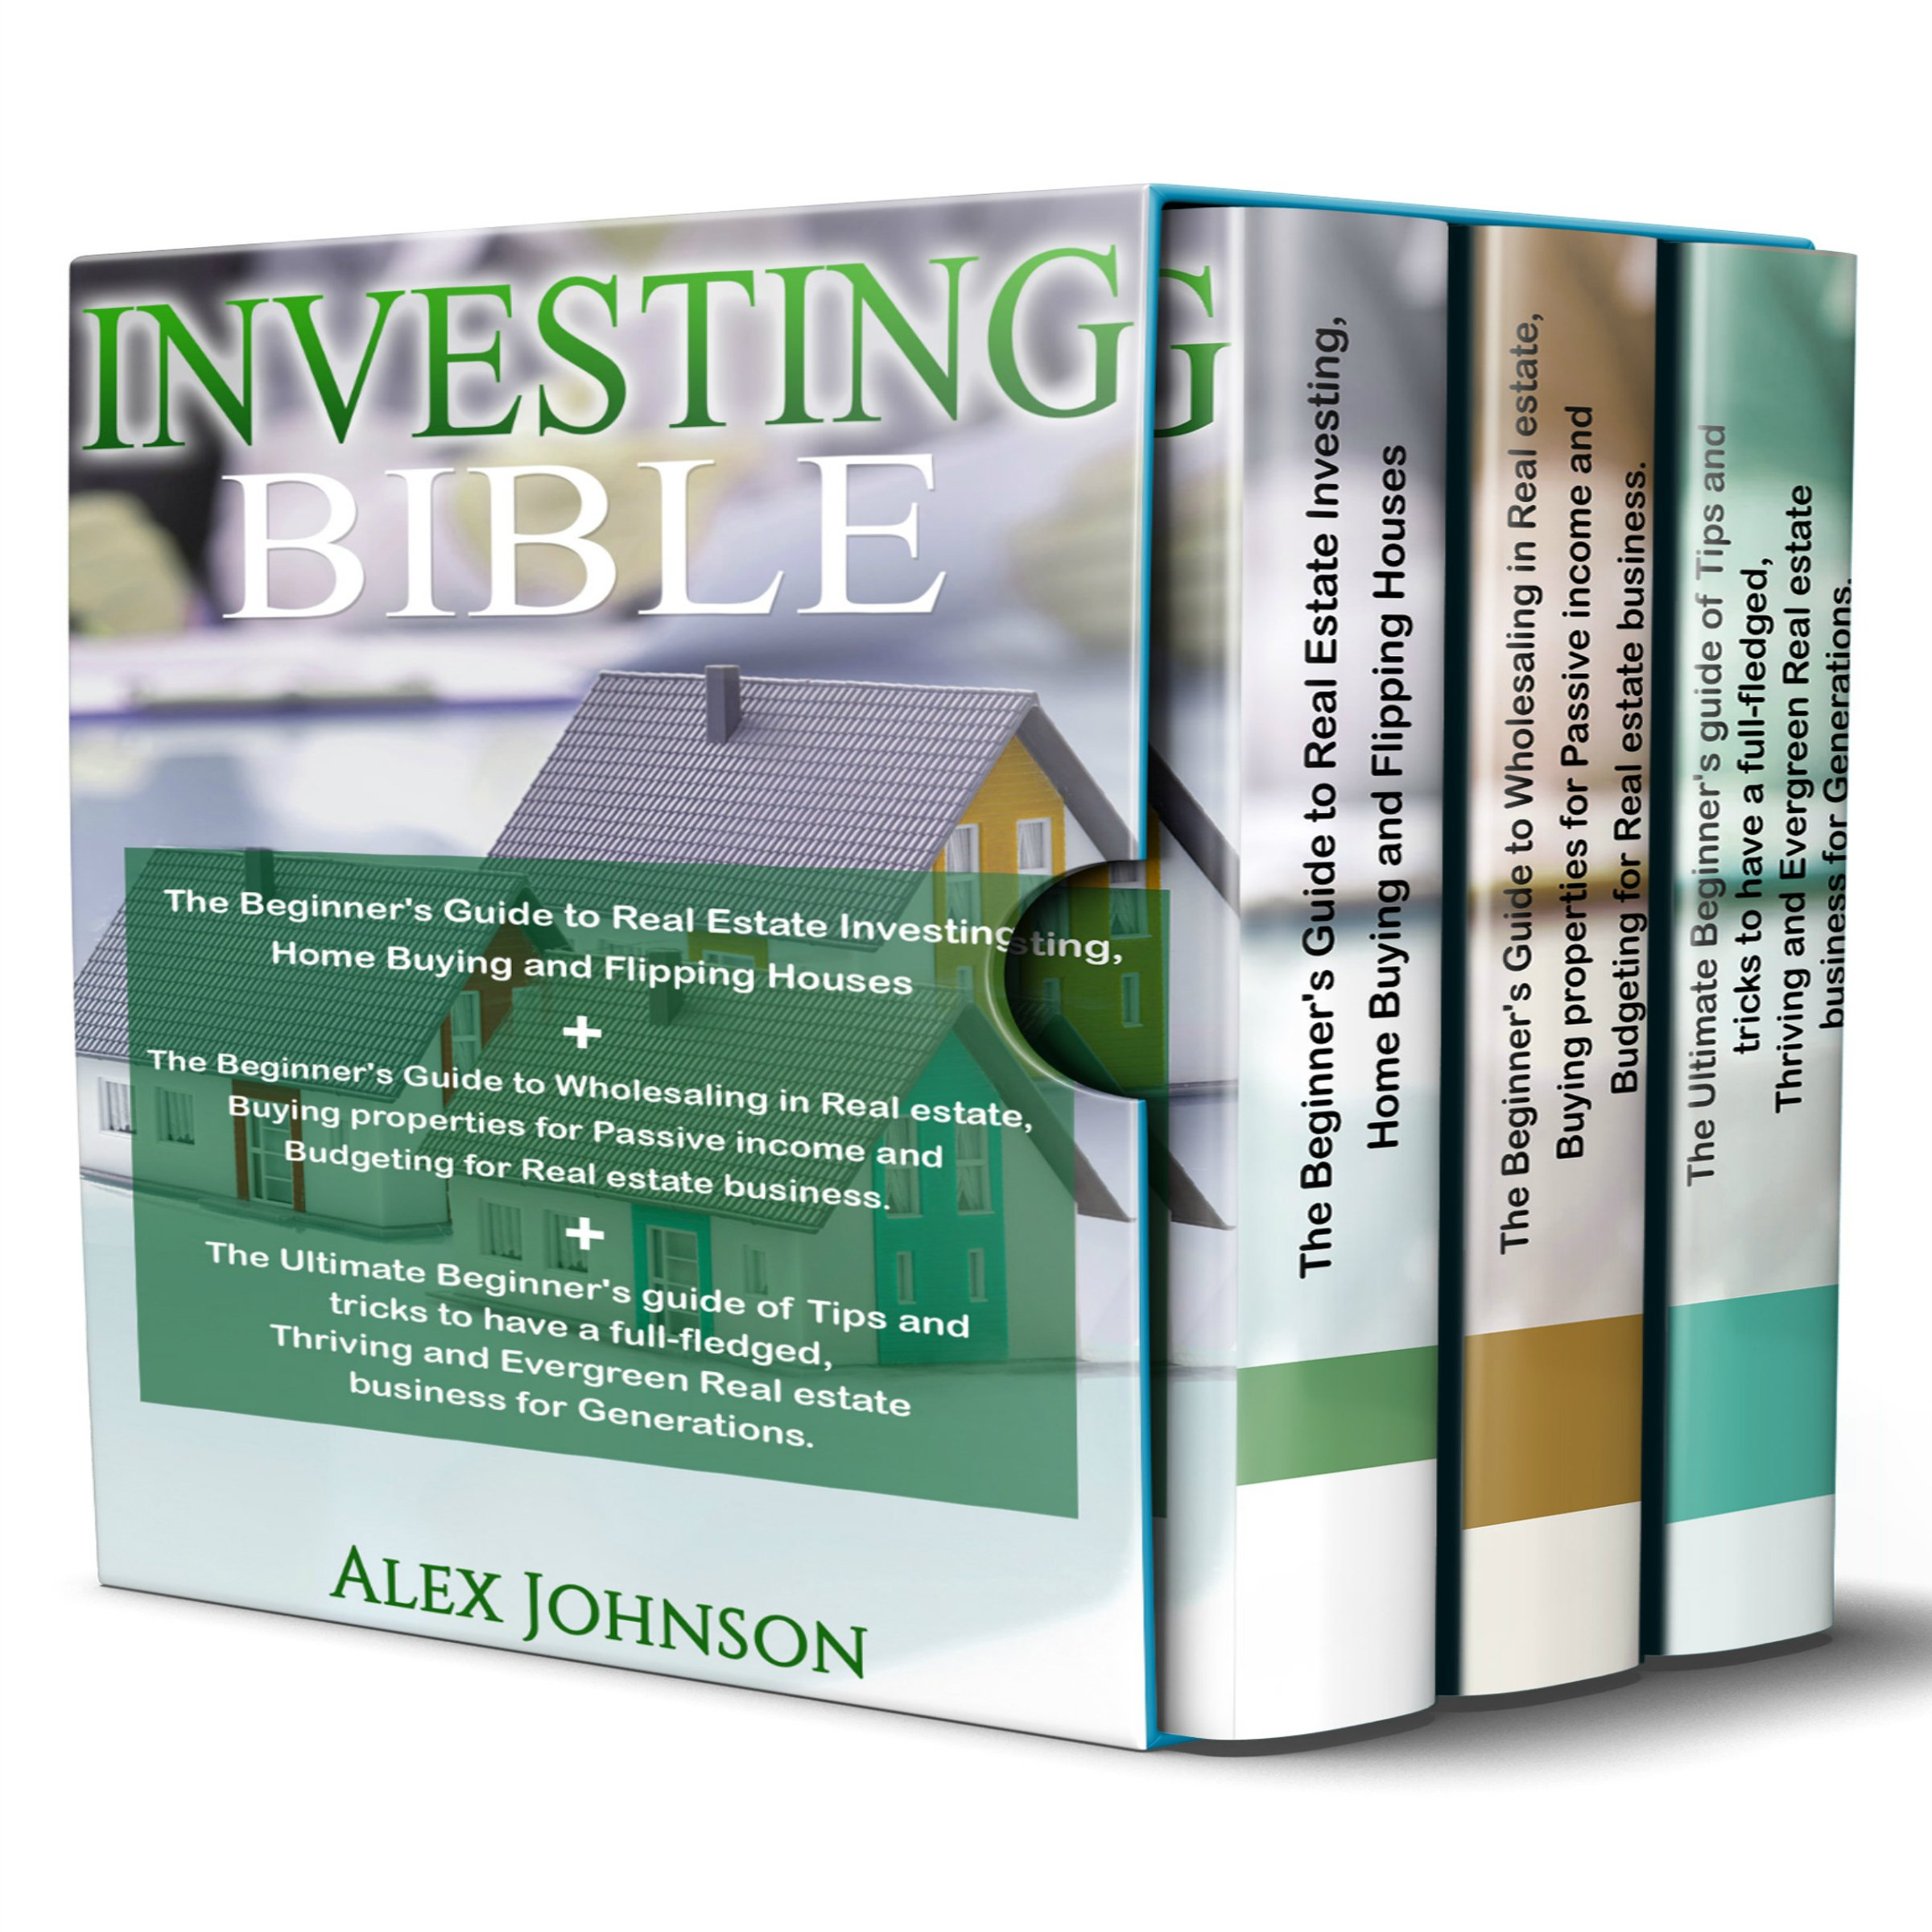 Investing Bible: 3 Manuscripts: Beginner's Guide to Home Buying & Flipping Houses + Beginner's Guide to Wholesaling & Budgeting in Real Estate + Tips & Tricks to have a Thriving and Evergreen Business